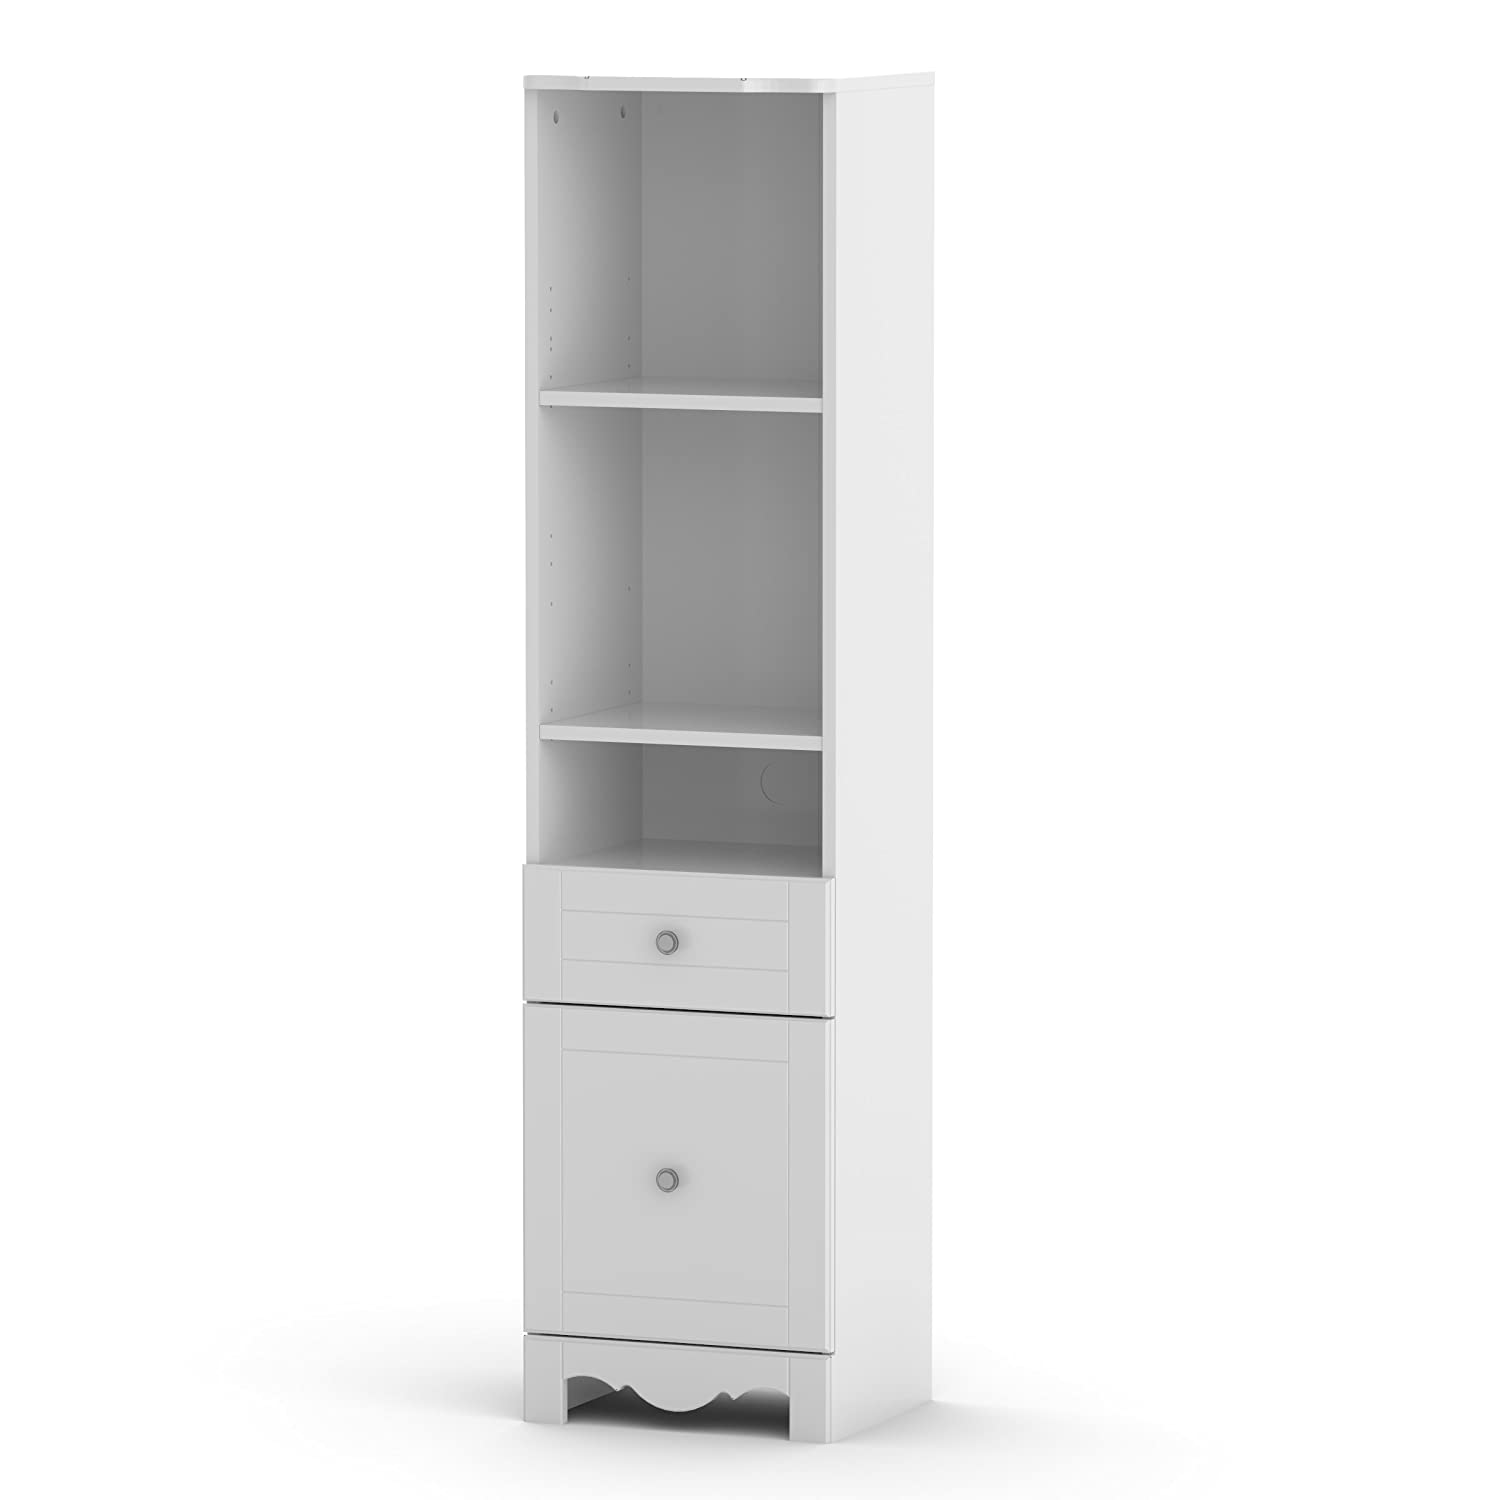 Pixel 60-inch Bookcase Tower 314303 from Nexera, White